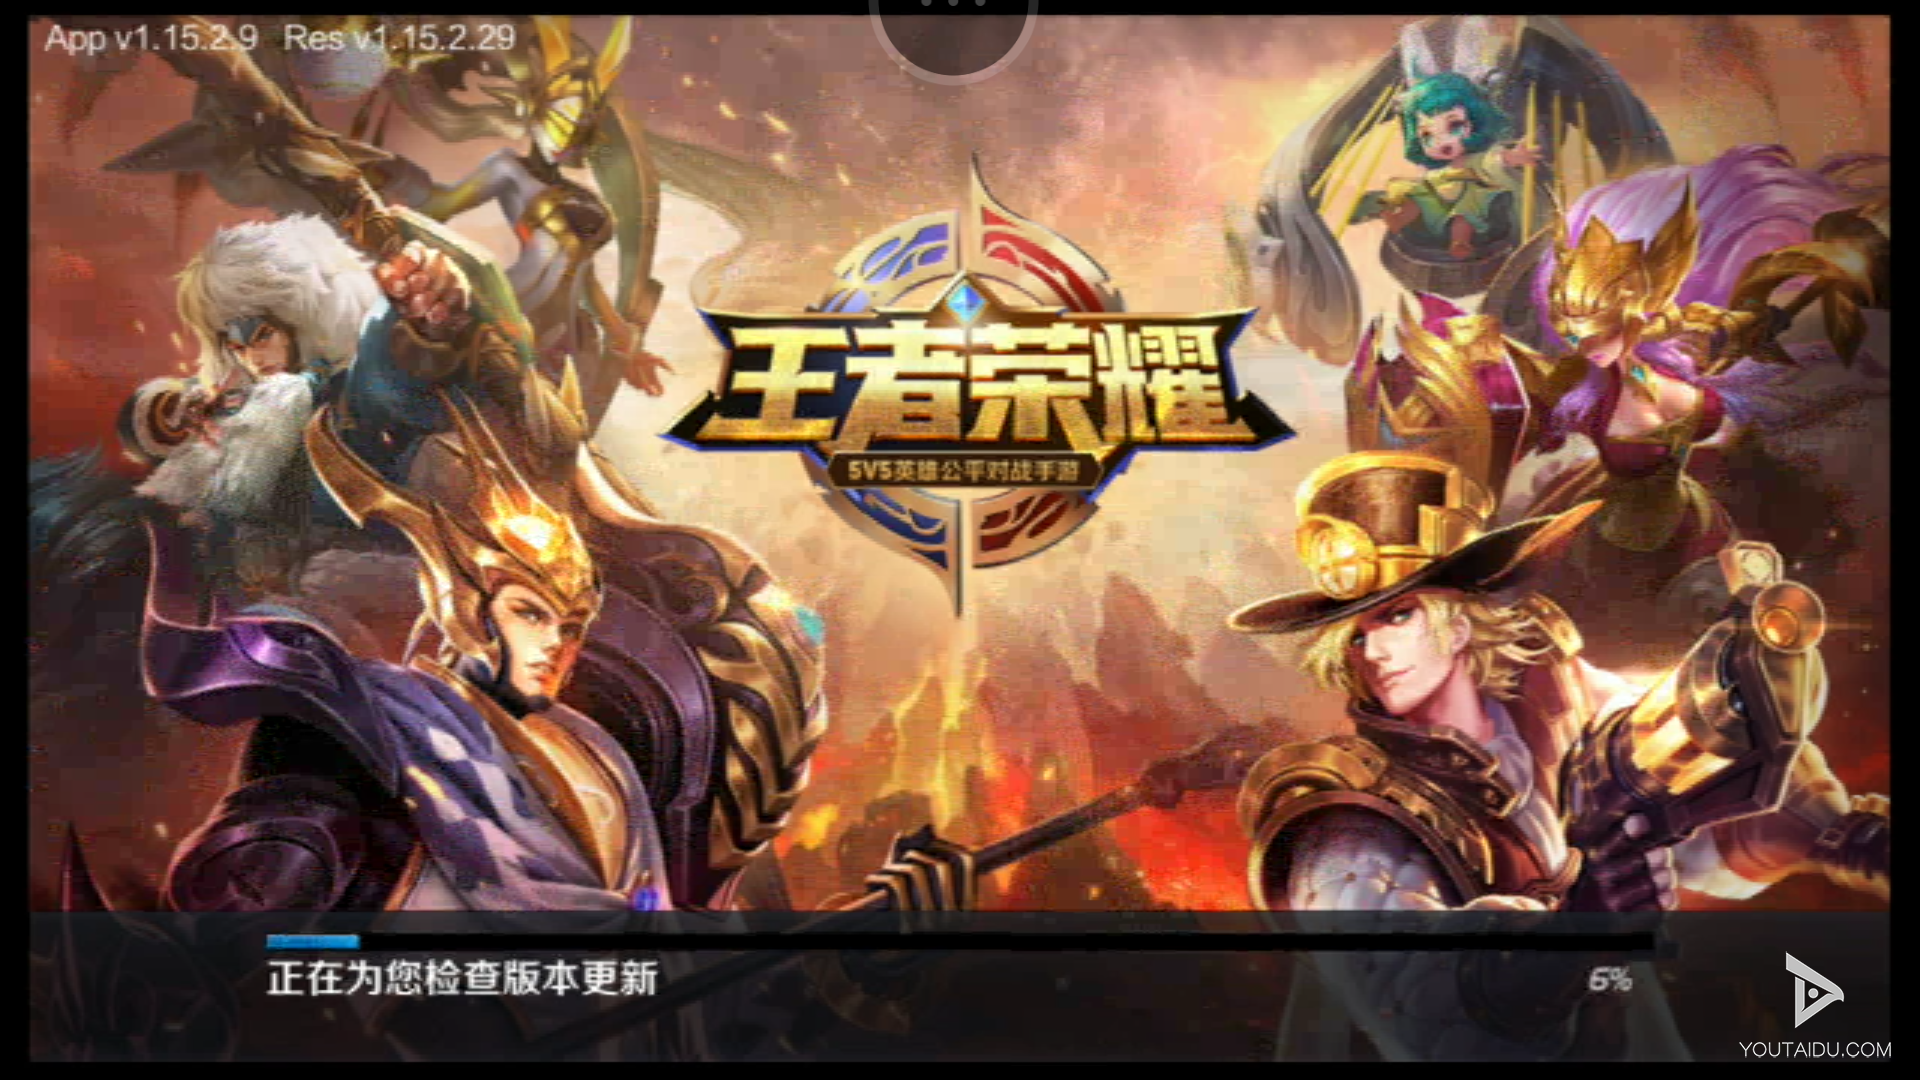 Screenshot_2016-11-18-01-59-27_com.tencent.gamestation.control.png